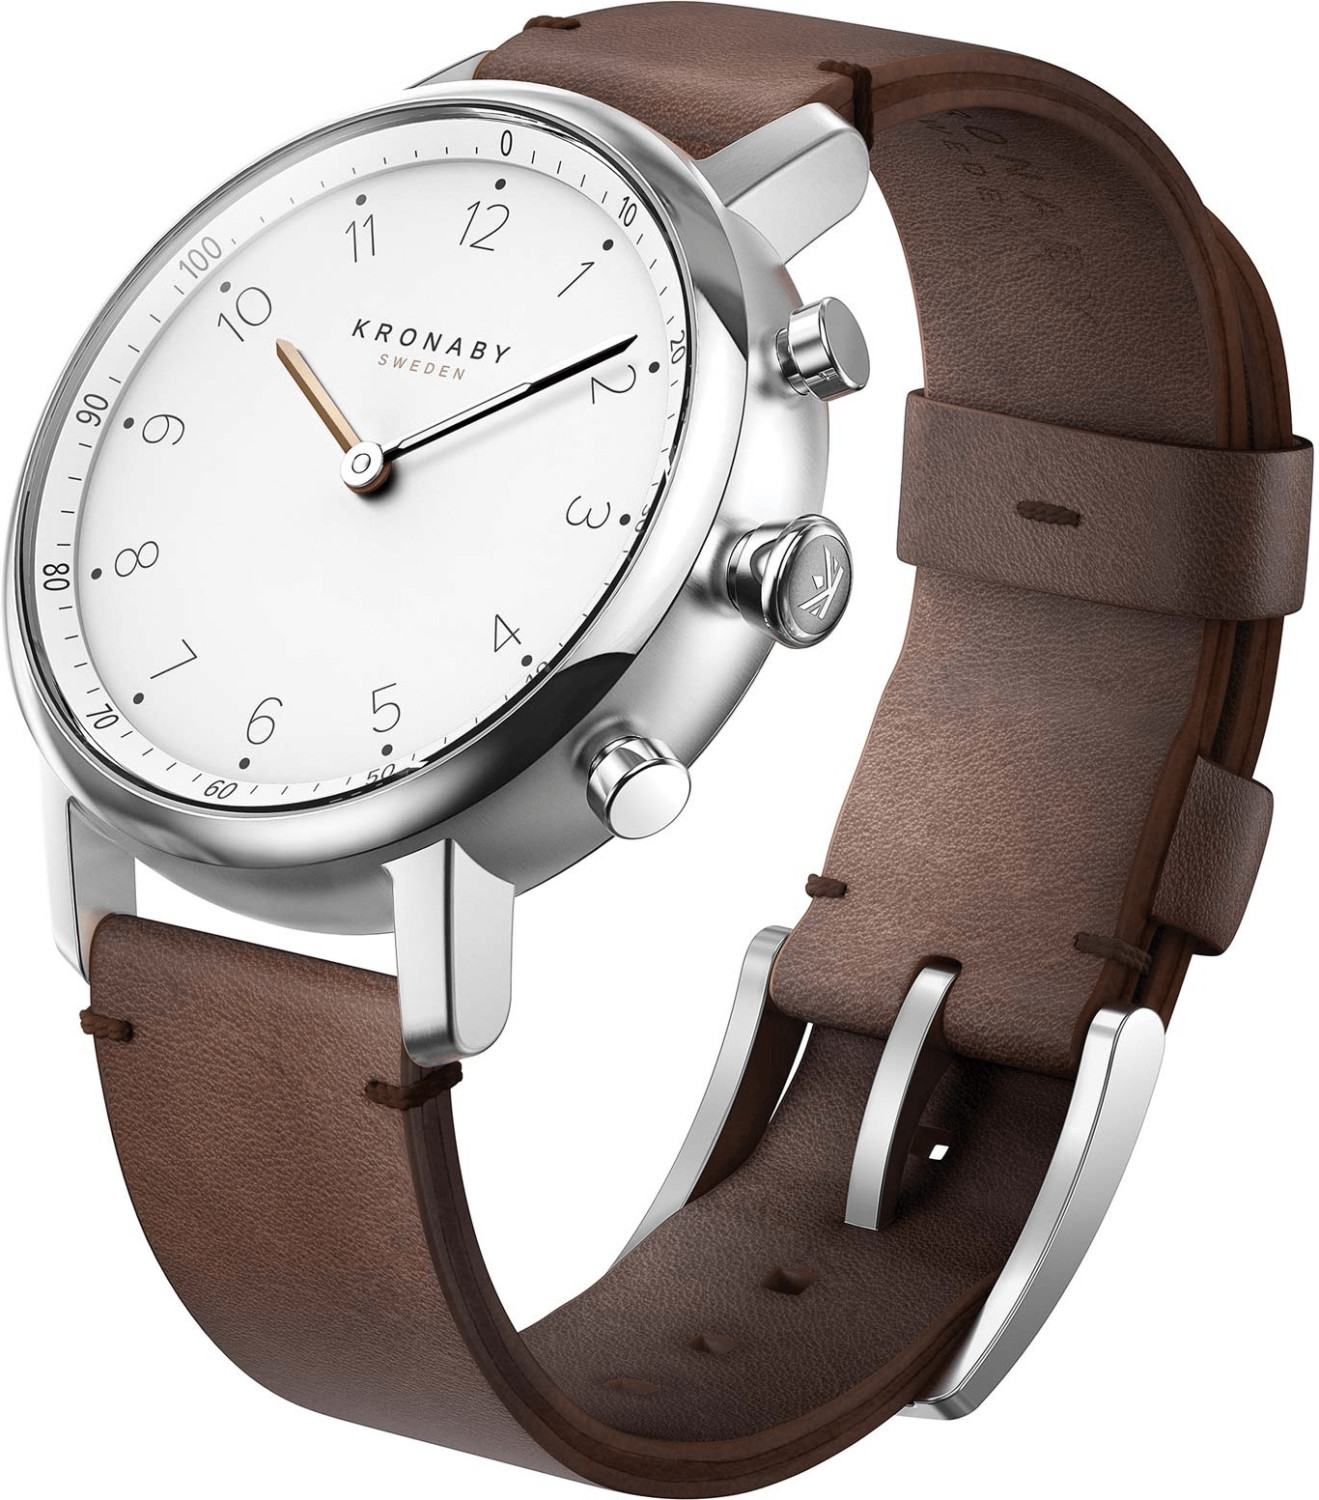 Image of Kronaby Nord brown Leather Strap